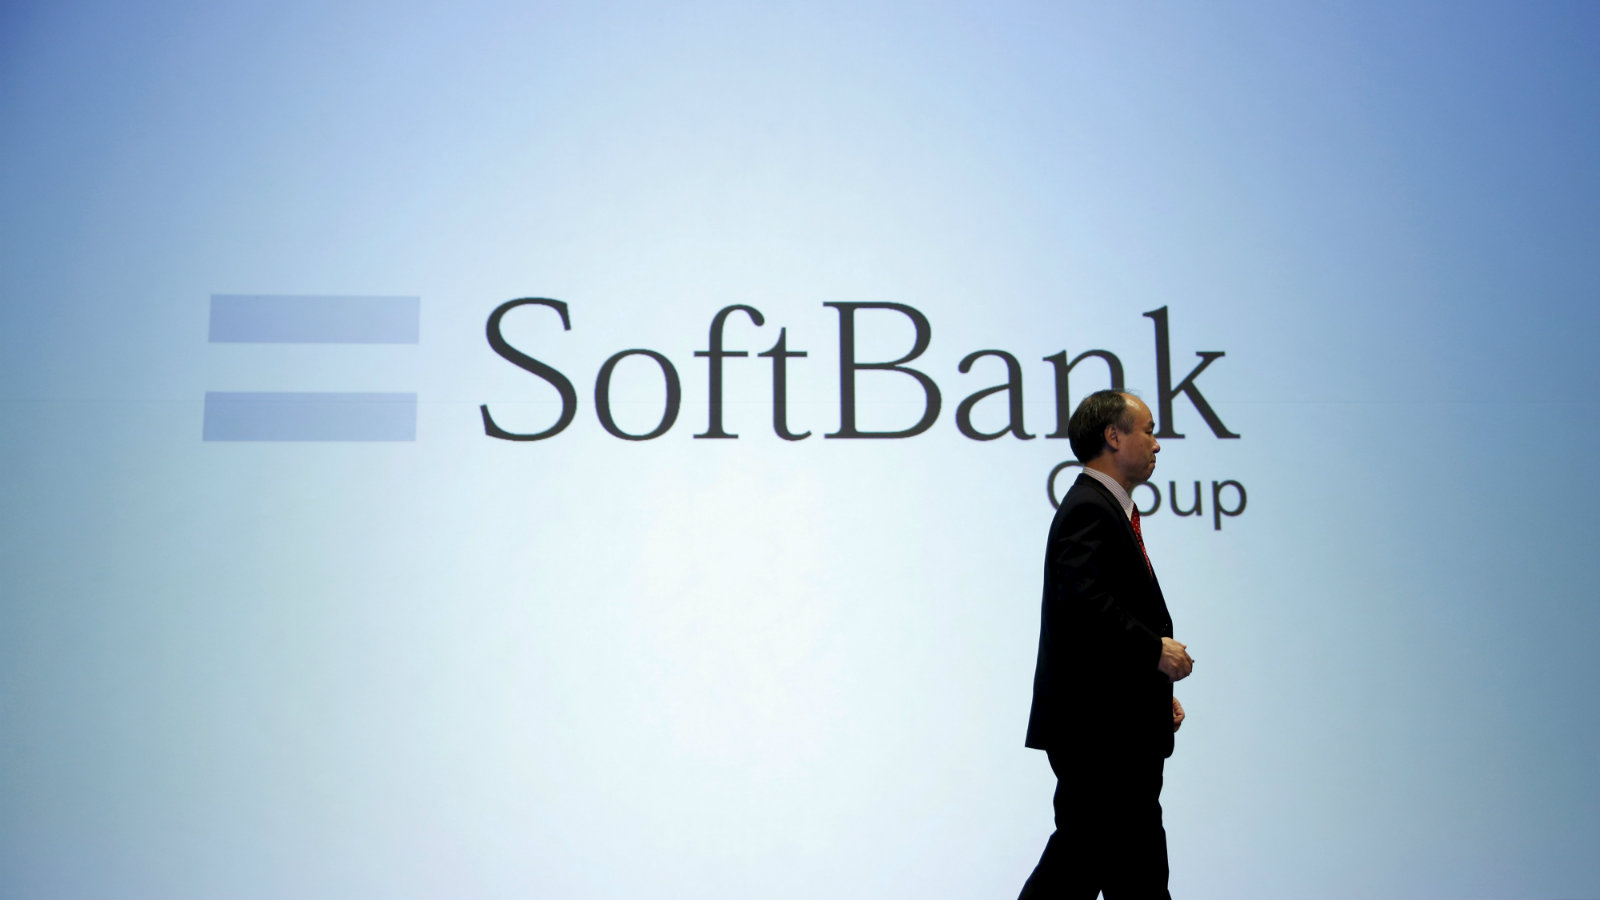 SoftBank Group Corp Chairman and CEO Masayoshi Son attends a news conference in Tokyo, Japan, November 4, 2015. SoftBank Group's second-quarter operating profit rose 39 percent on cost cuts and some improvement at its struggling U.S. unit Sprint Corp.